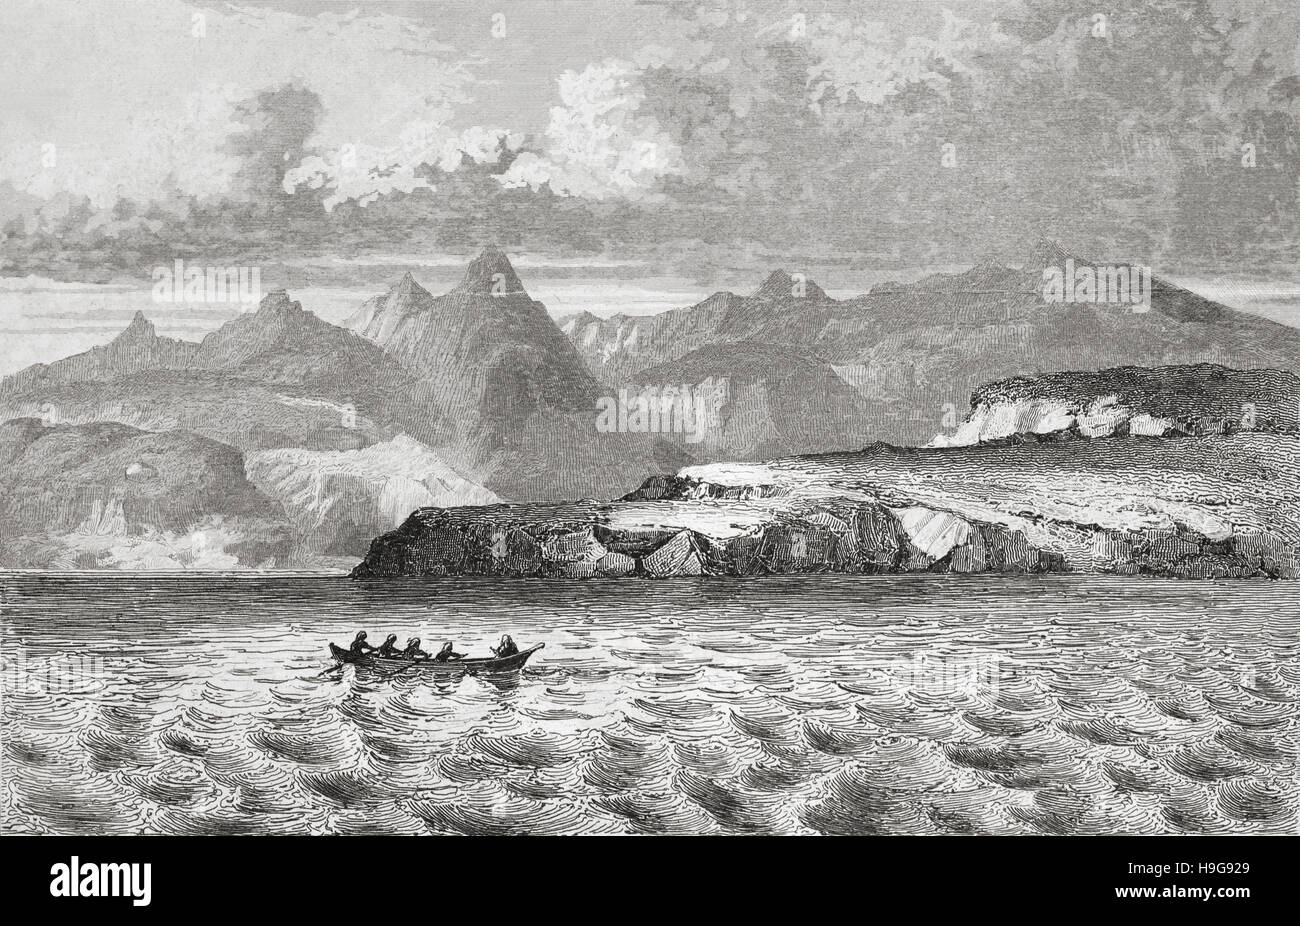 Wollaston Islands, Cape Horn, Chile. 19th century steel engraving by Gaucherel and Lemaitre direxit. - Stock Image